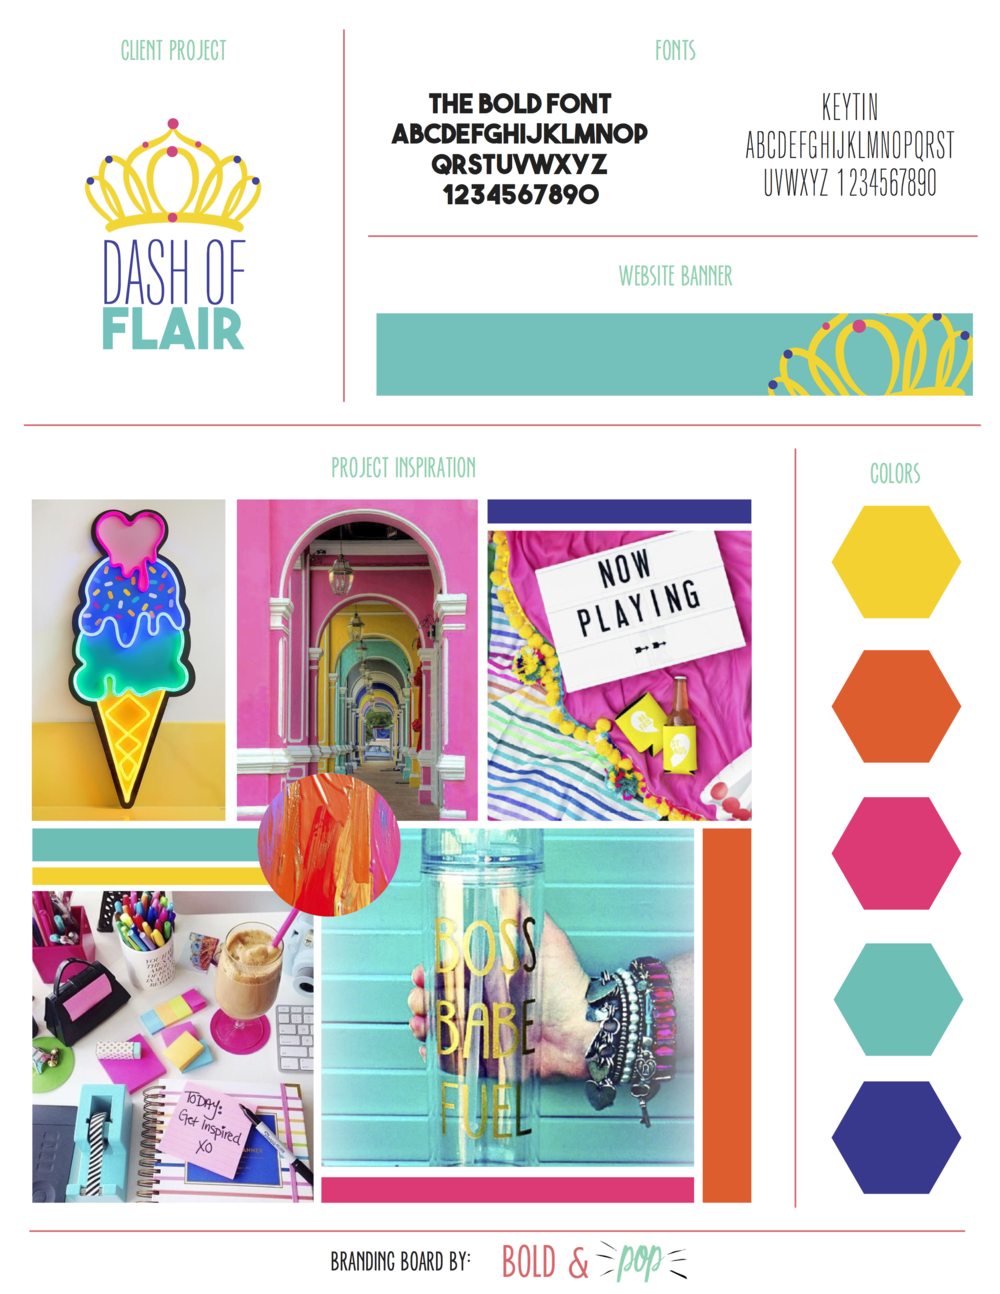 Bold & Pop : Dash of Flair Branding & Website Design